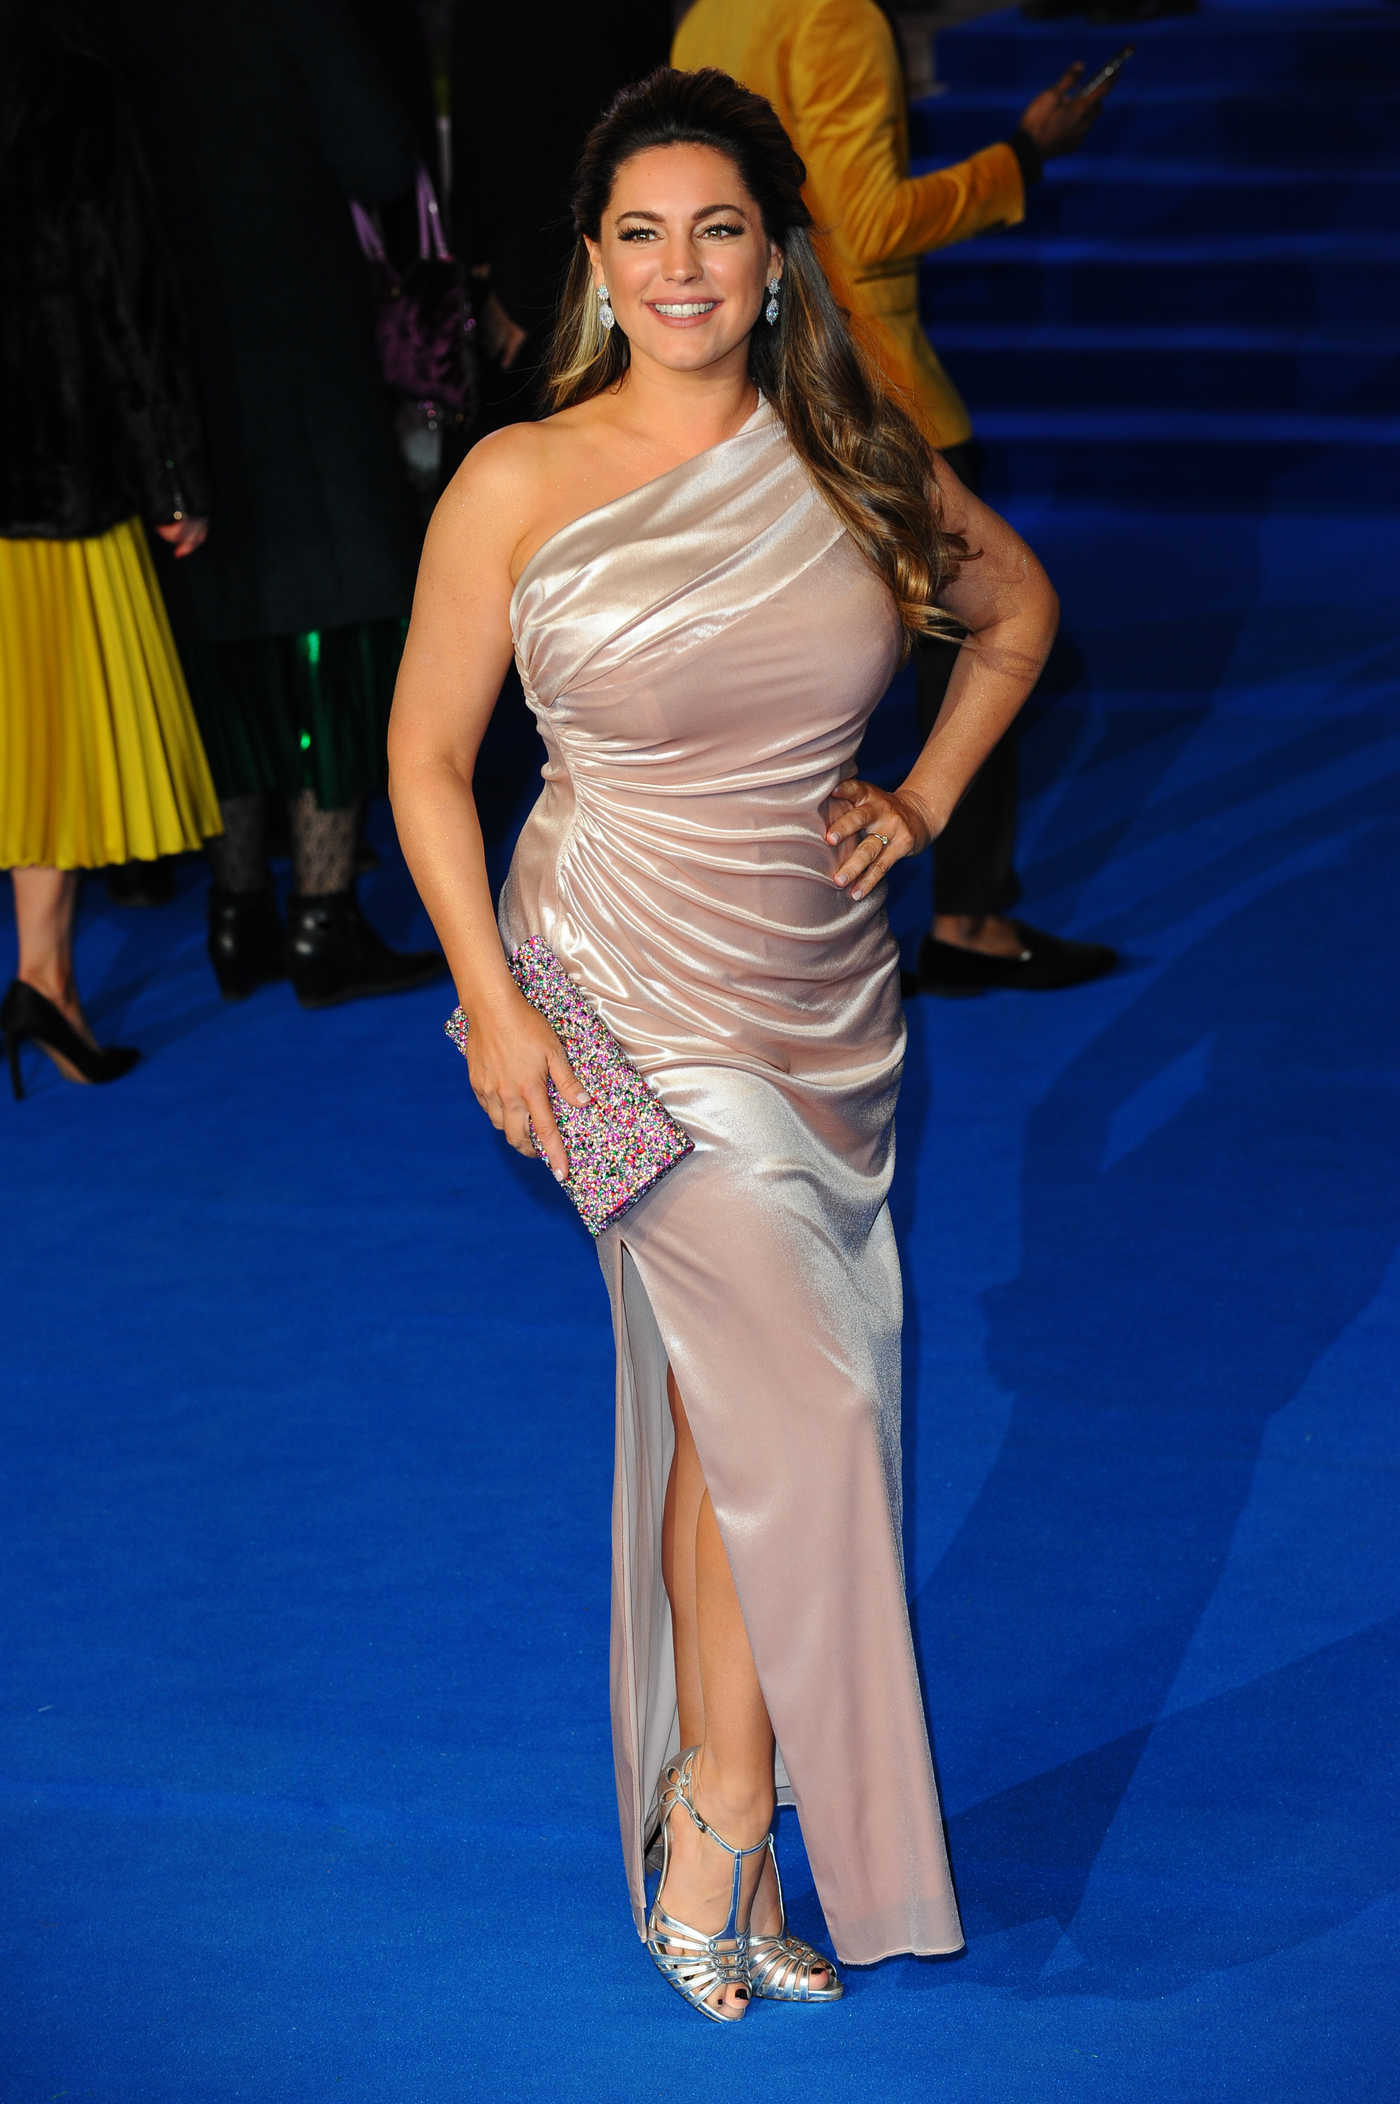 Kelly Brook Attends Mary Poppins Returns Premiere in London 12/12/2018